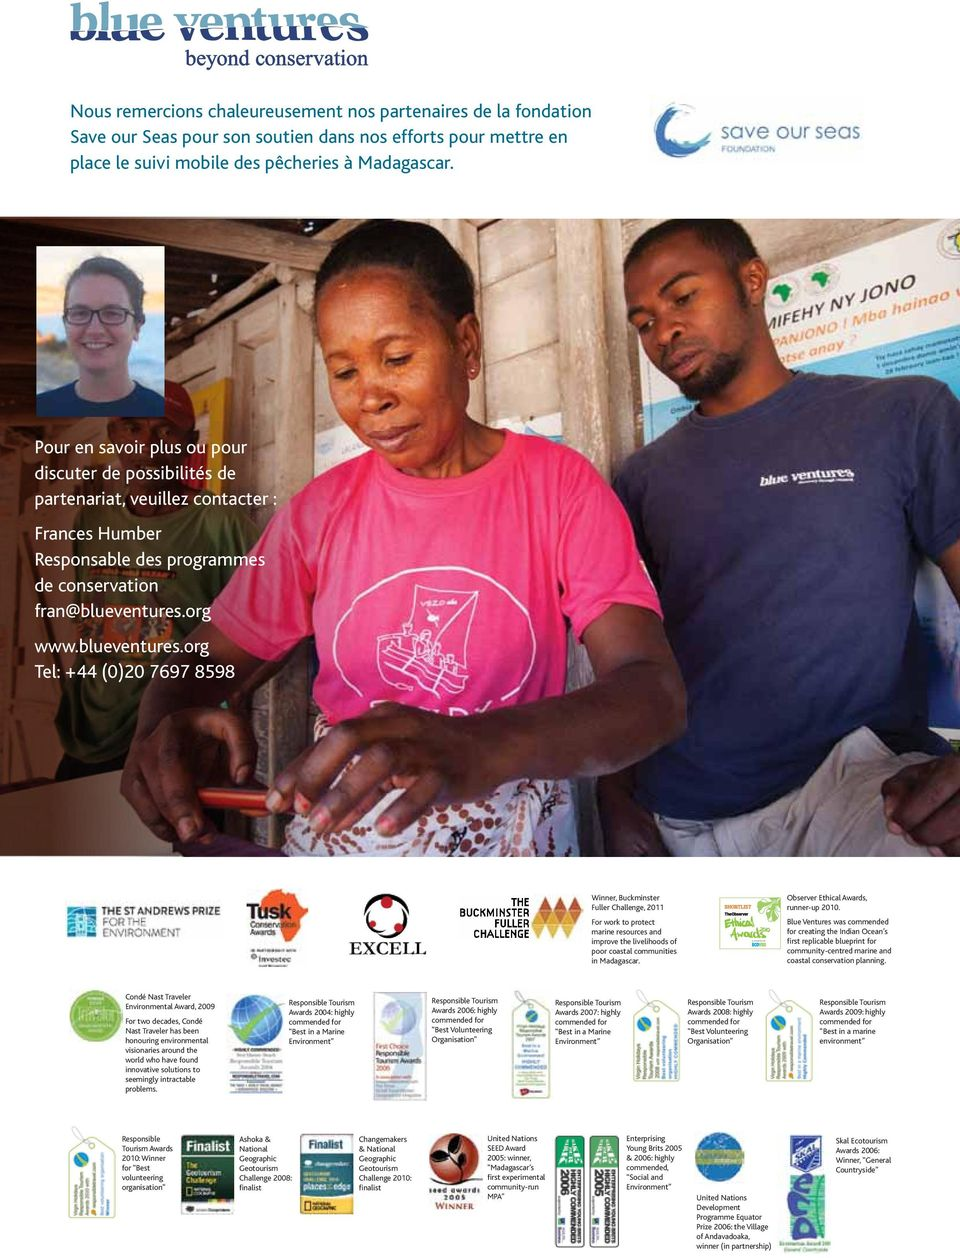 org www.blueventures.org Tel: +44 (0)20 7697 8598 Winner, Buckminster Fuller Challenge, 2011 For work to protect marine resources and improve the livelihoods of poor coastal communities in Madagascar.